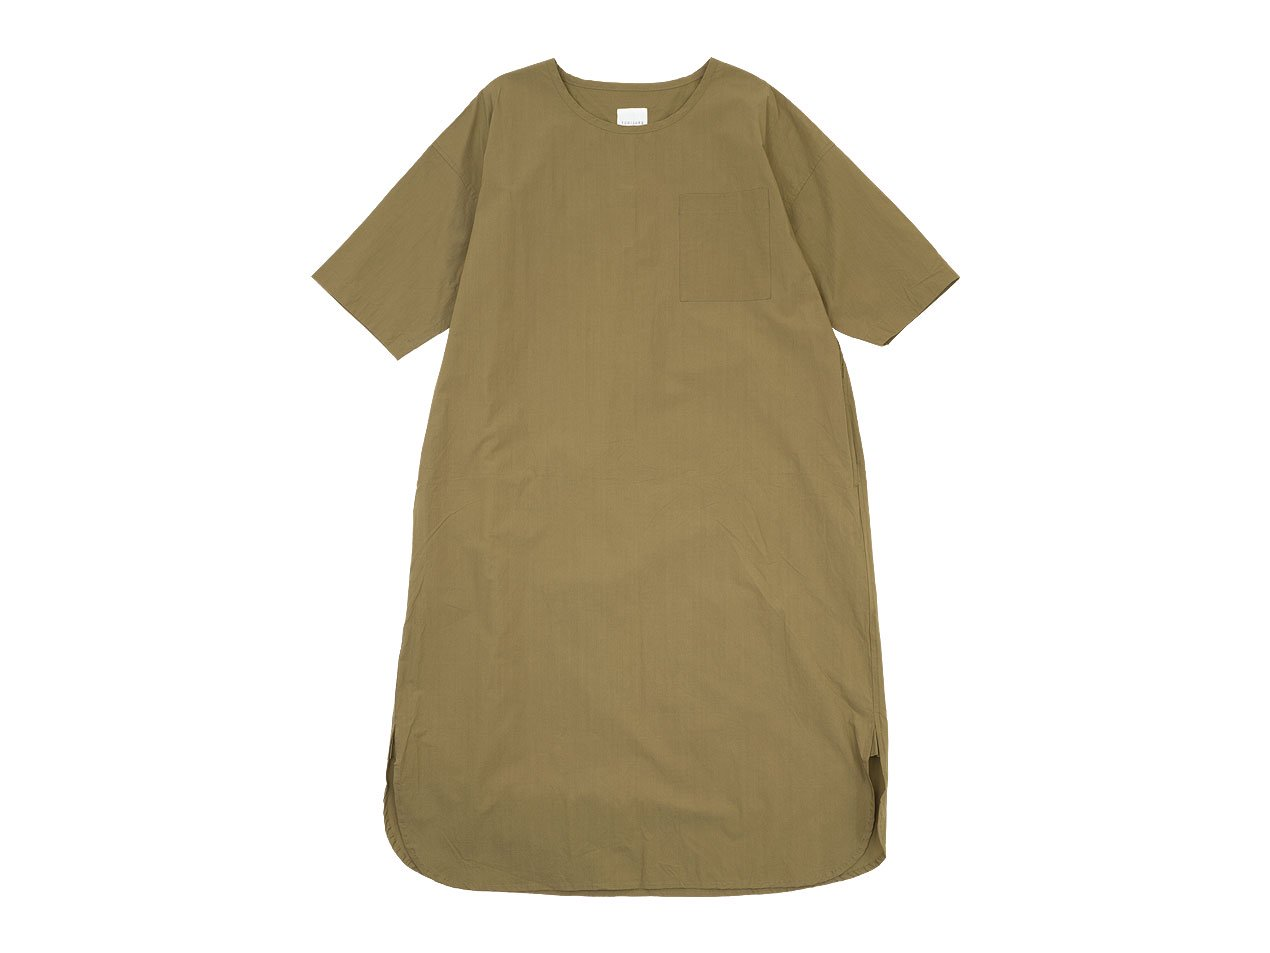 TOUJOURS Crew Neck Boy's Shirt Dress TOBACCO【SM32BD02】